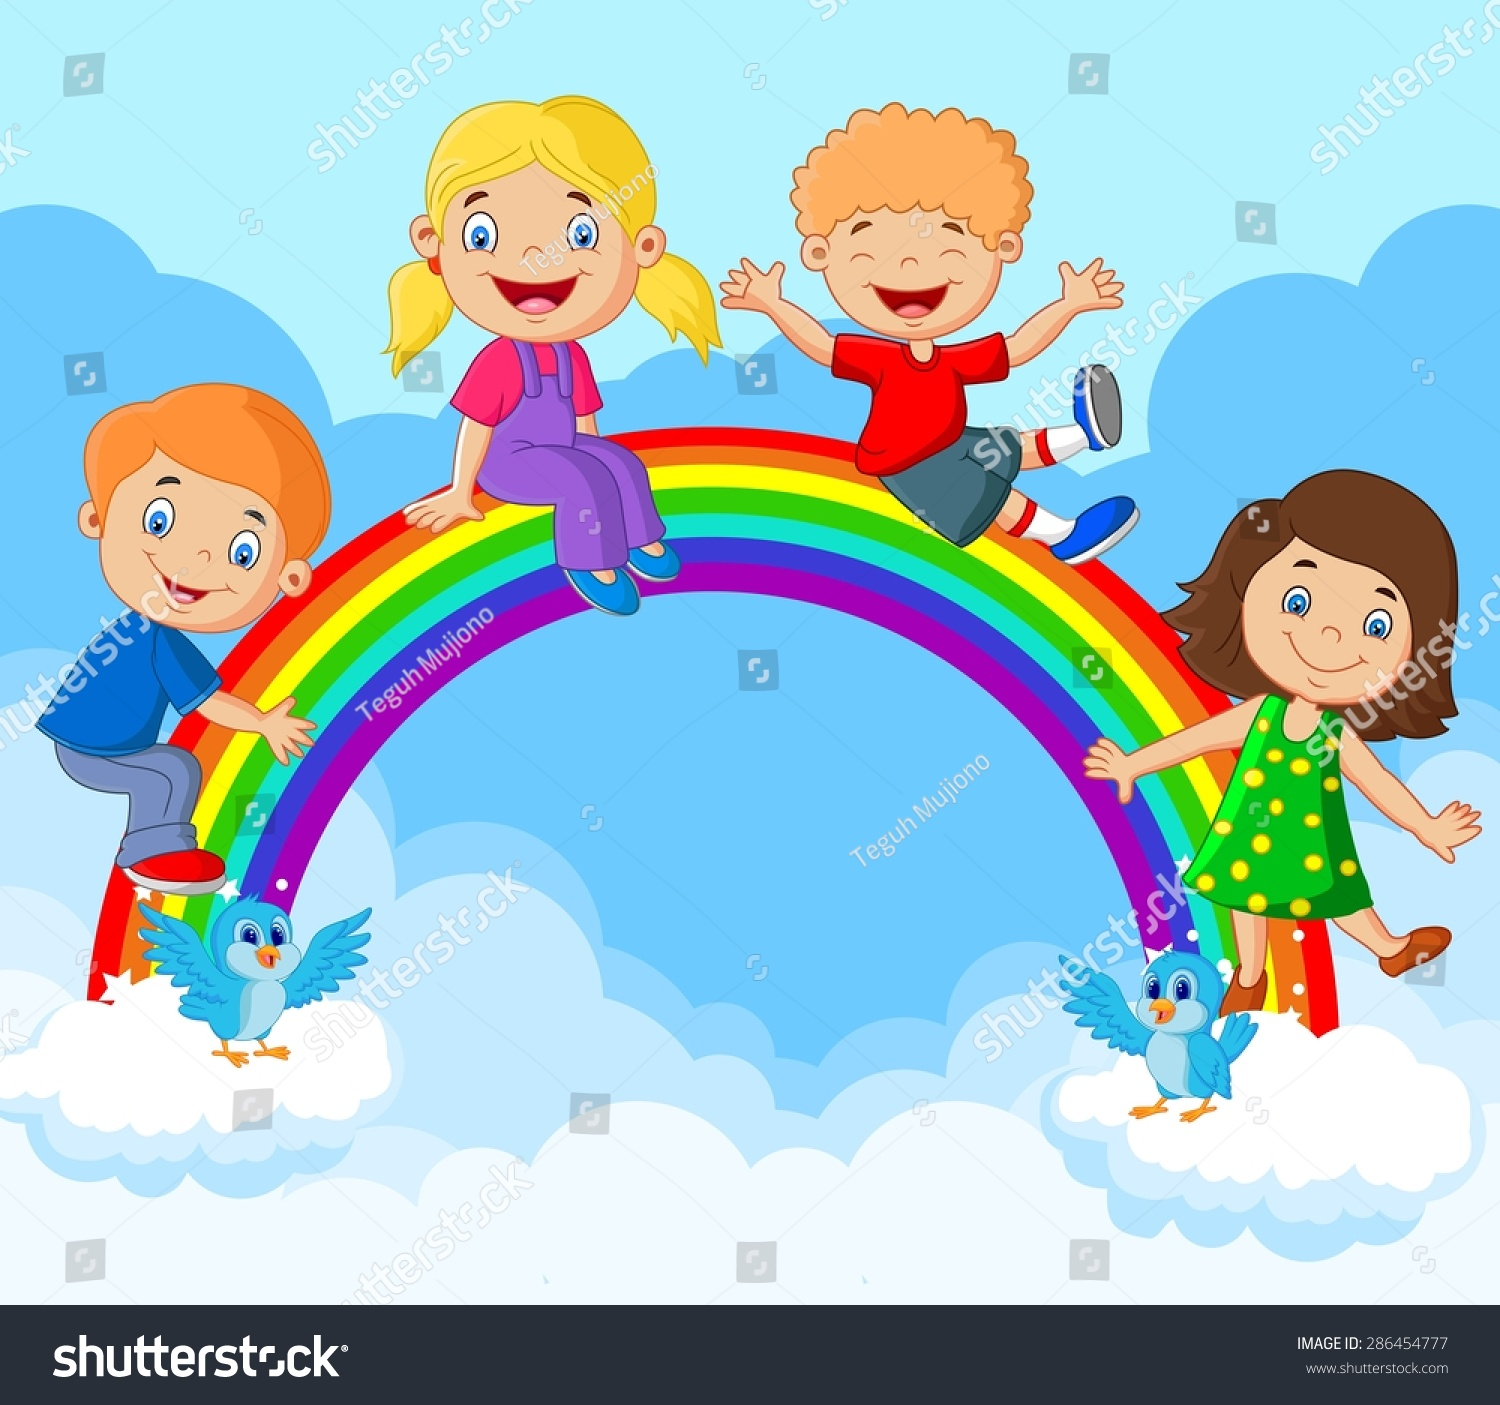 About Rainbow Yoga Rainbow Yoga is a fun and constantly evolving family business. It was lovingly born in , with the intention of giving people the tools to teach fun, engaging, and creative yoga classes for kids, families, partners and communities.